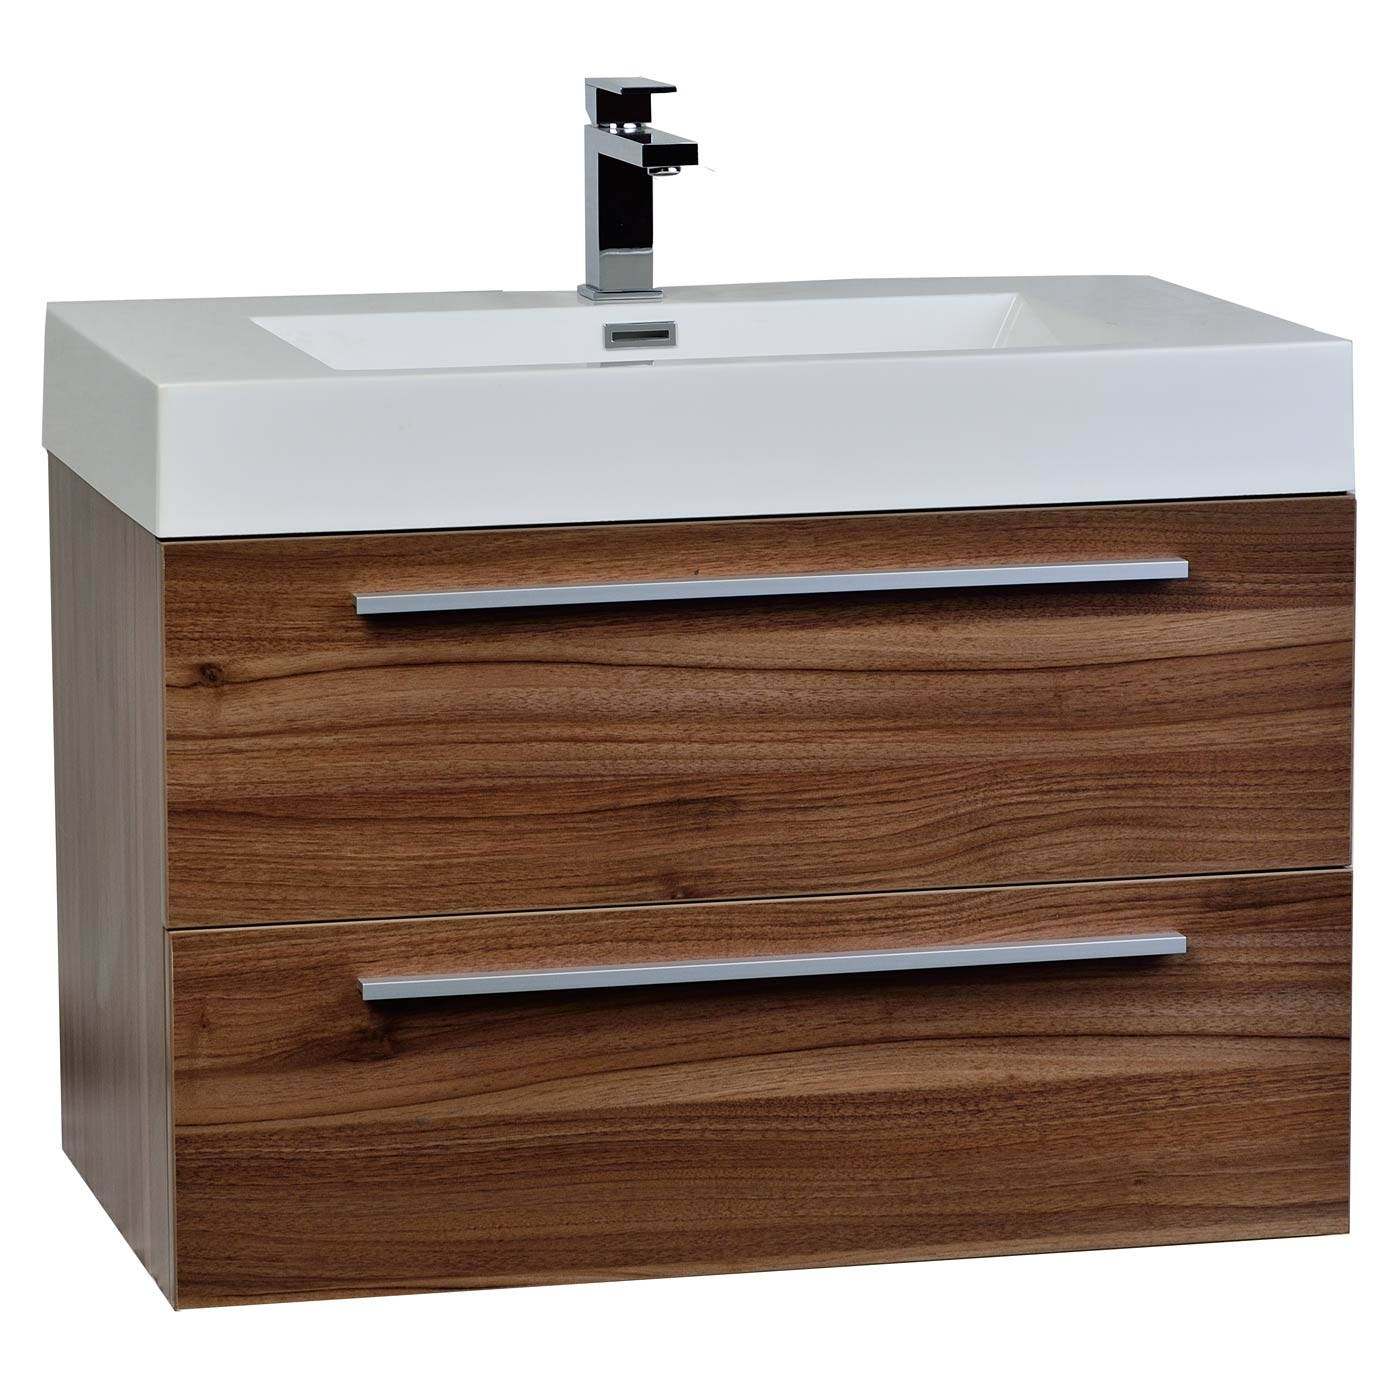 buy  in wallmount contemporary bathroom vanity set in walnut  -  wallmount contemporary bathroom vanity set in walnut tnmwn